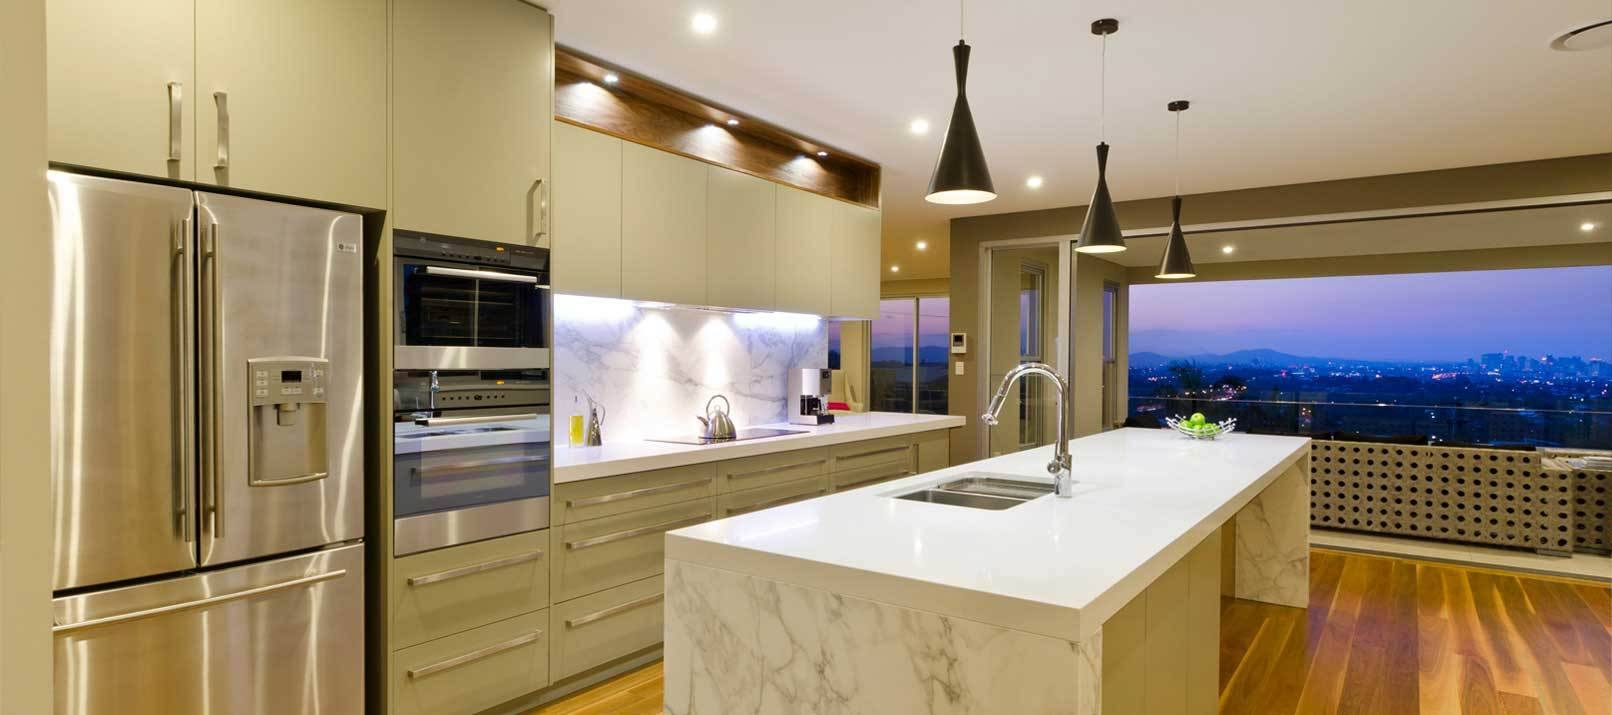 How to effectively plan your new kitchen designer kitchens for Kitchen kitchen design